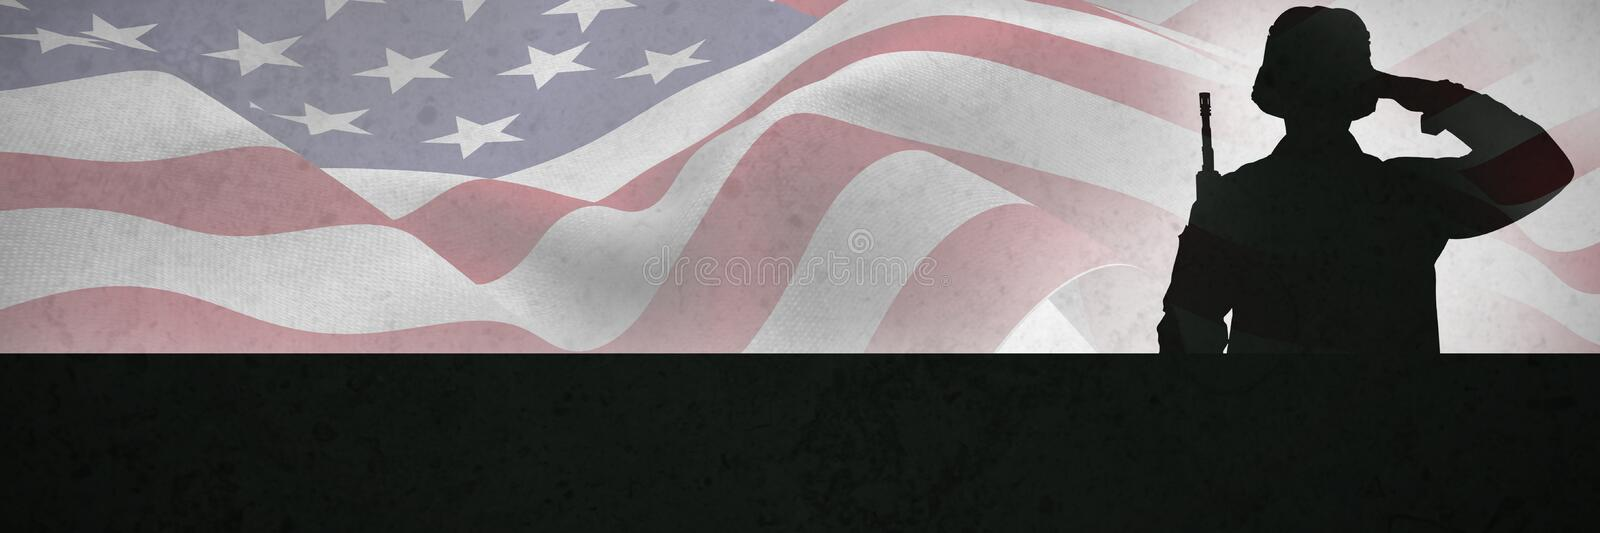 Composite image of portrait of soldier holding rifle and saluting. Portrait of soldier holding rifle and saluting against grey background stock photography